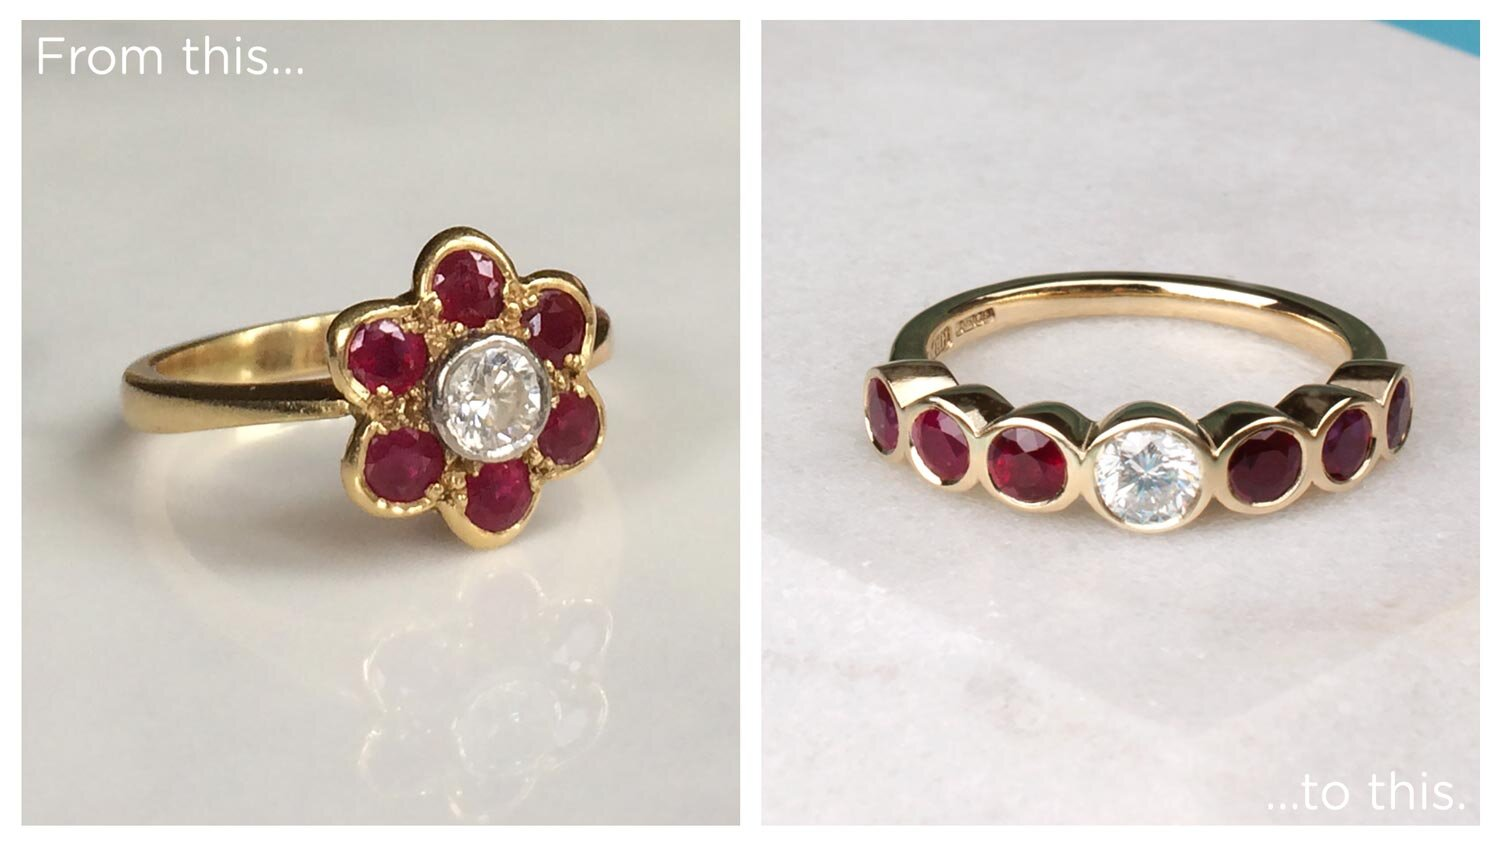 From-this-to-this-Gold-ruby-diamond-ring.jpg